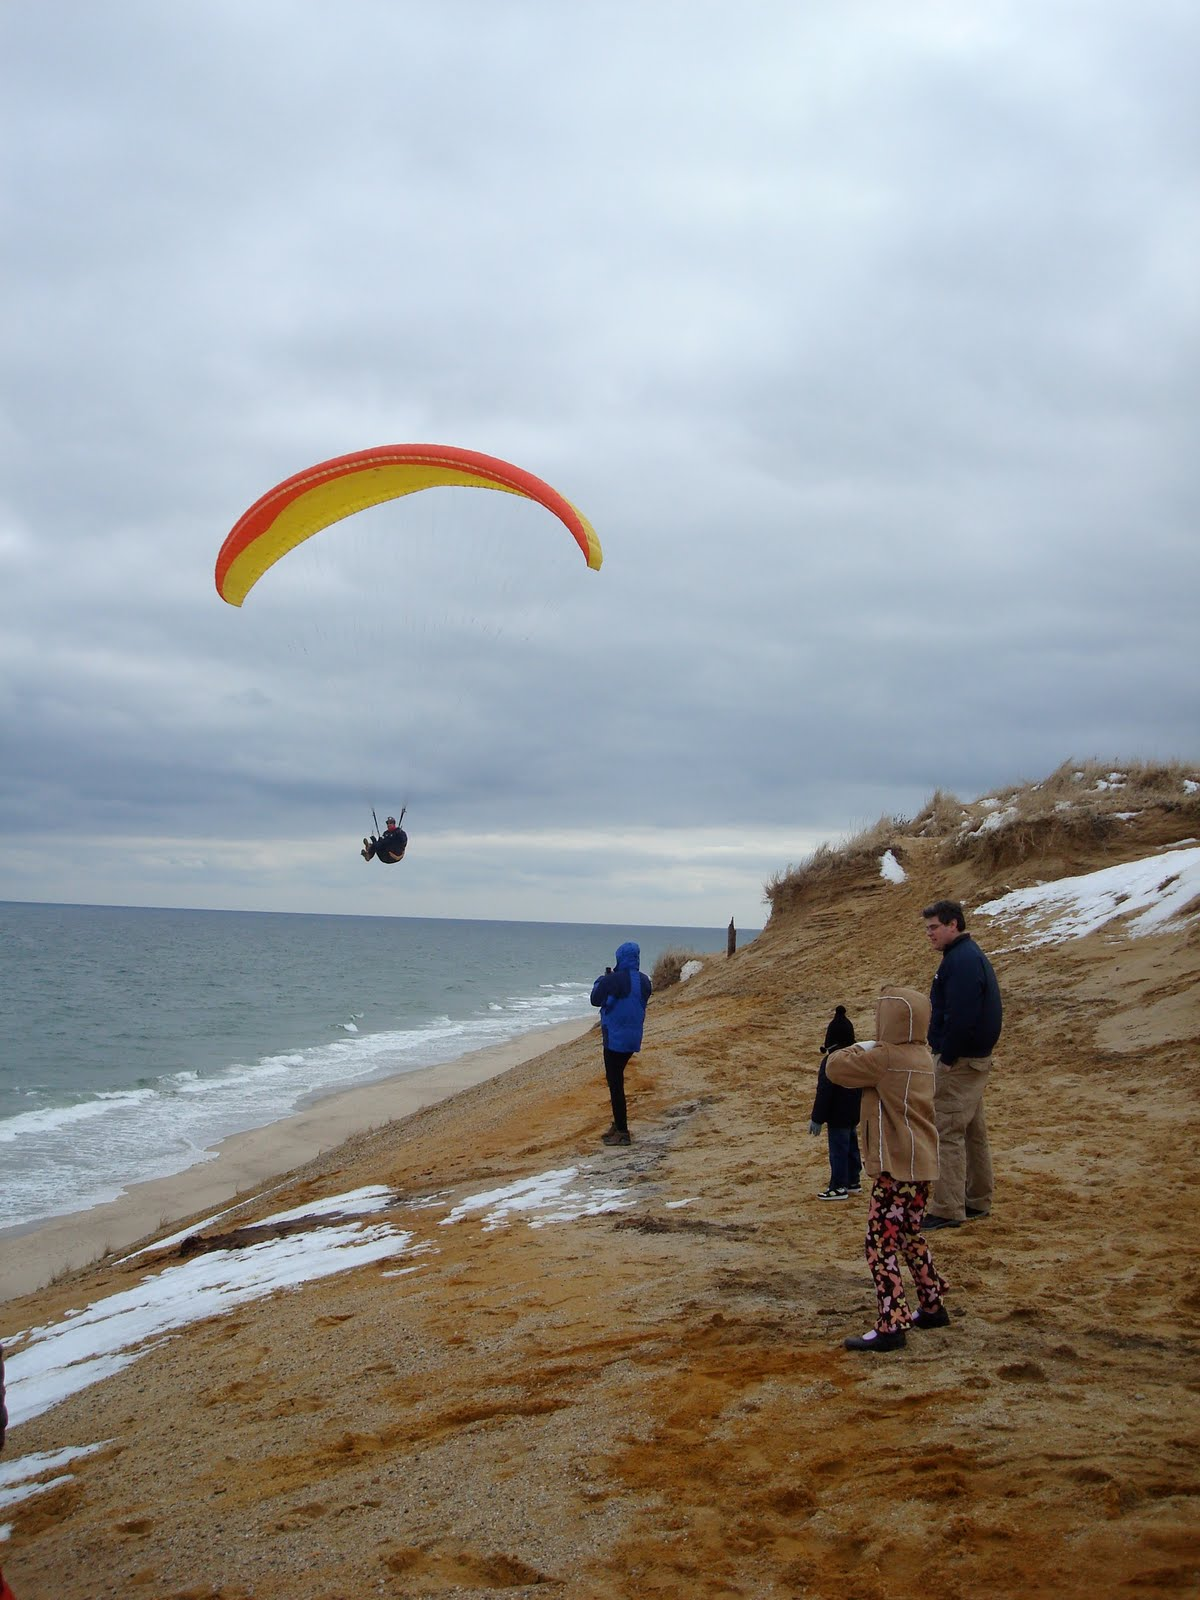 Literary Crushes/Grave Matters: Paragliding (Maybe someday)